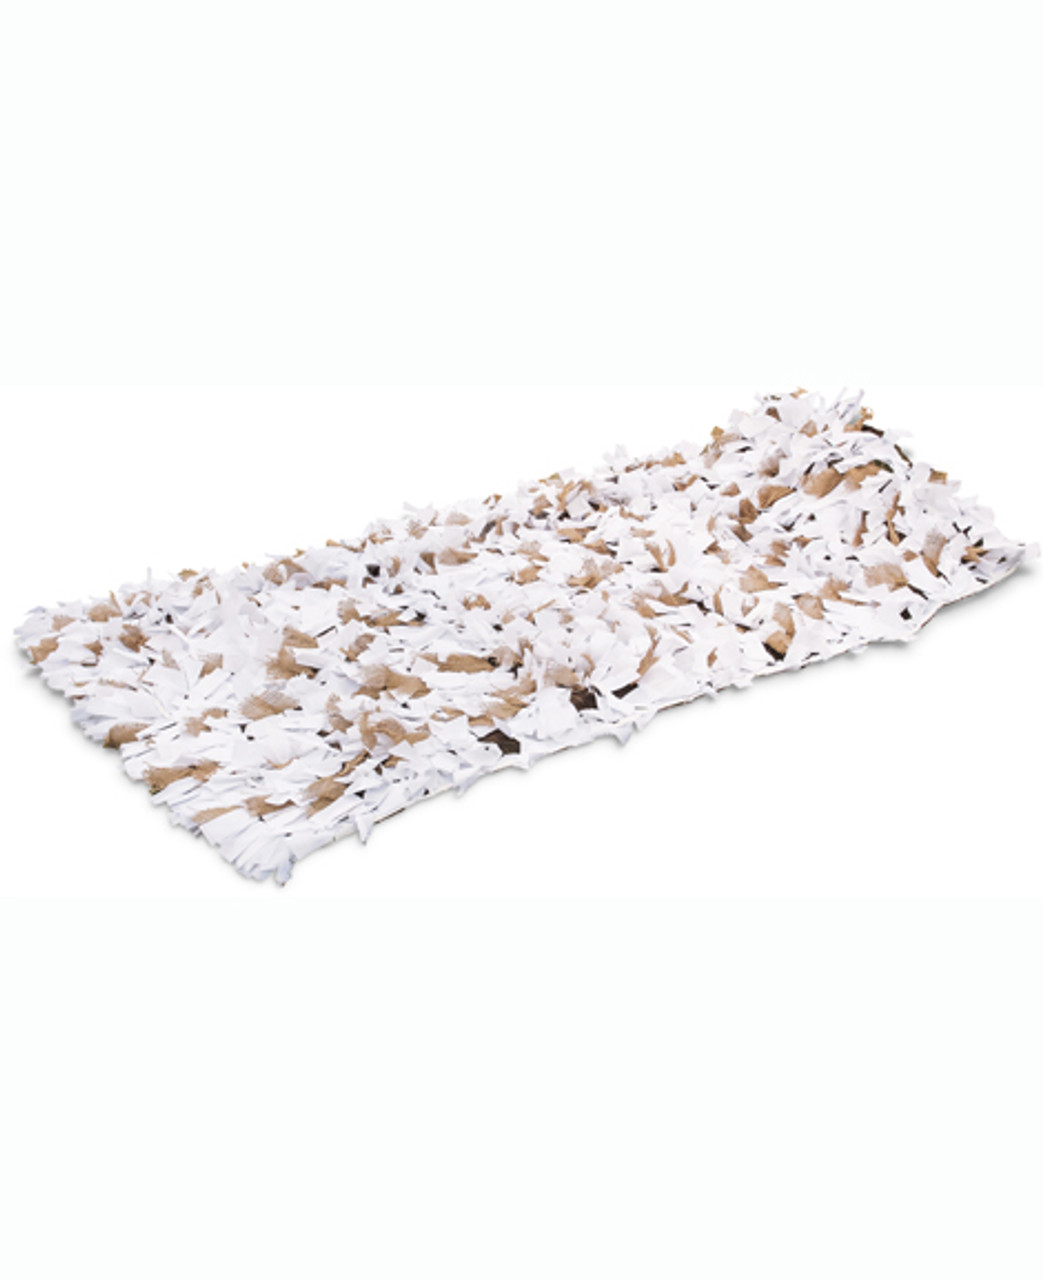 Beavertail Concealment Blanket (Snow Cover)